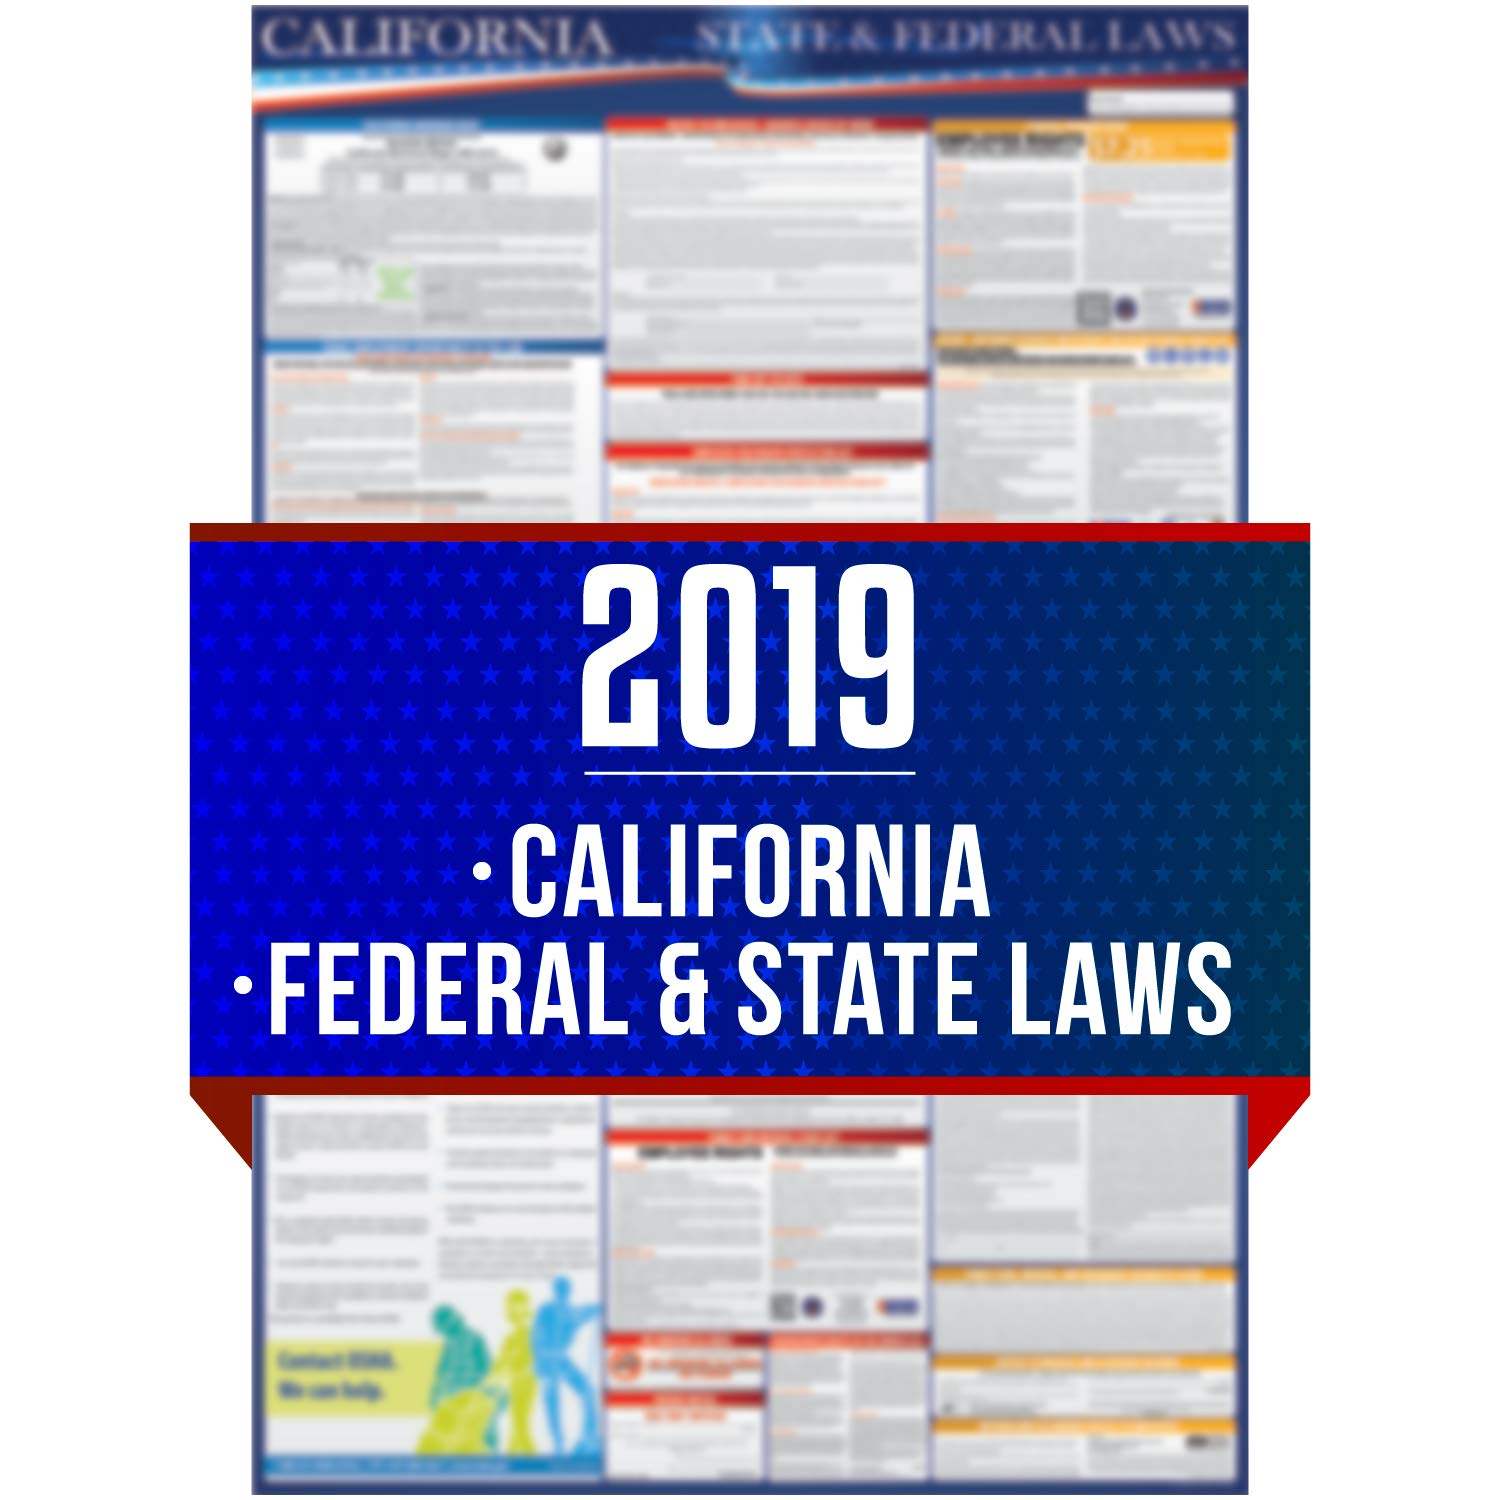 2019 California State And Federal Labor Laws Poster - OSHA Workplace Compliant 24'' x 36'' - All In One Required Posting - UV Coated by COMPLIANCE AUDIT CENTER (Image #1)